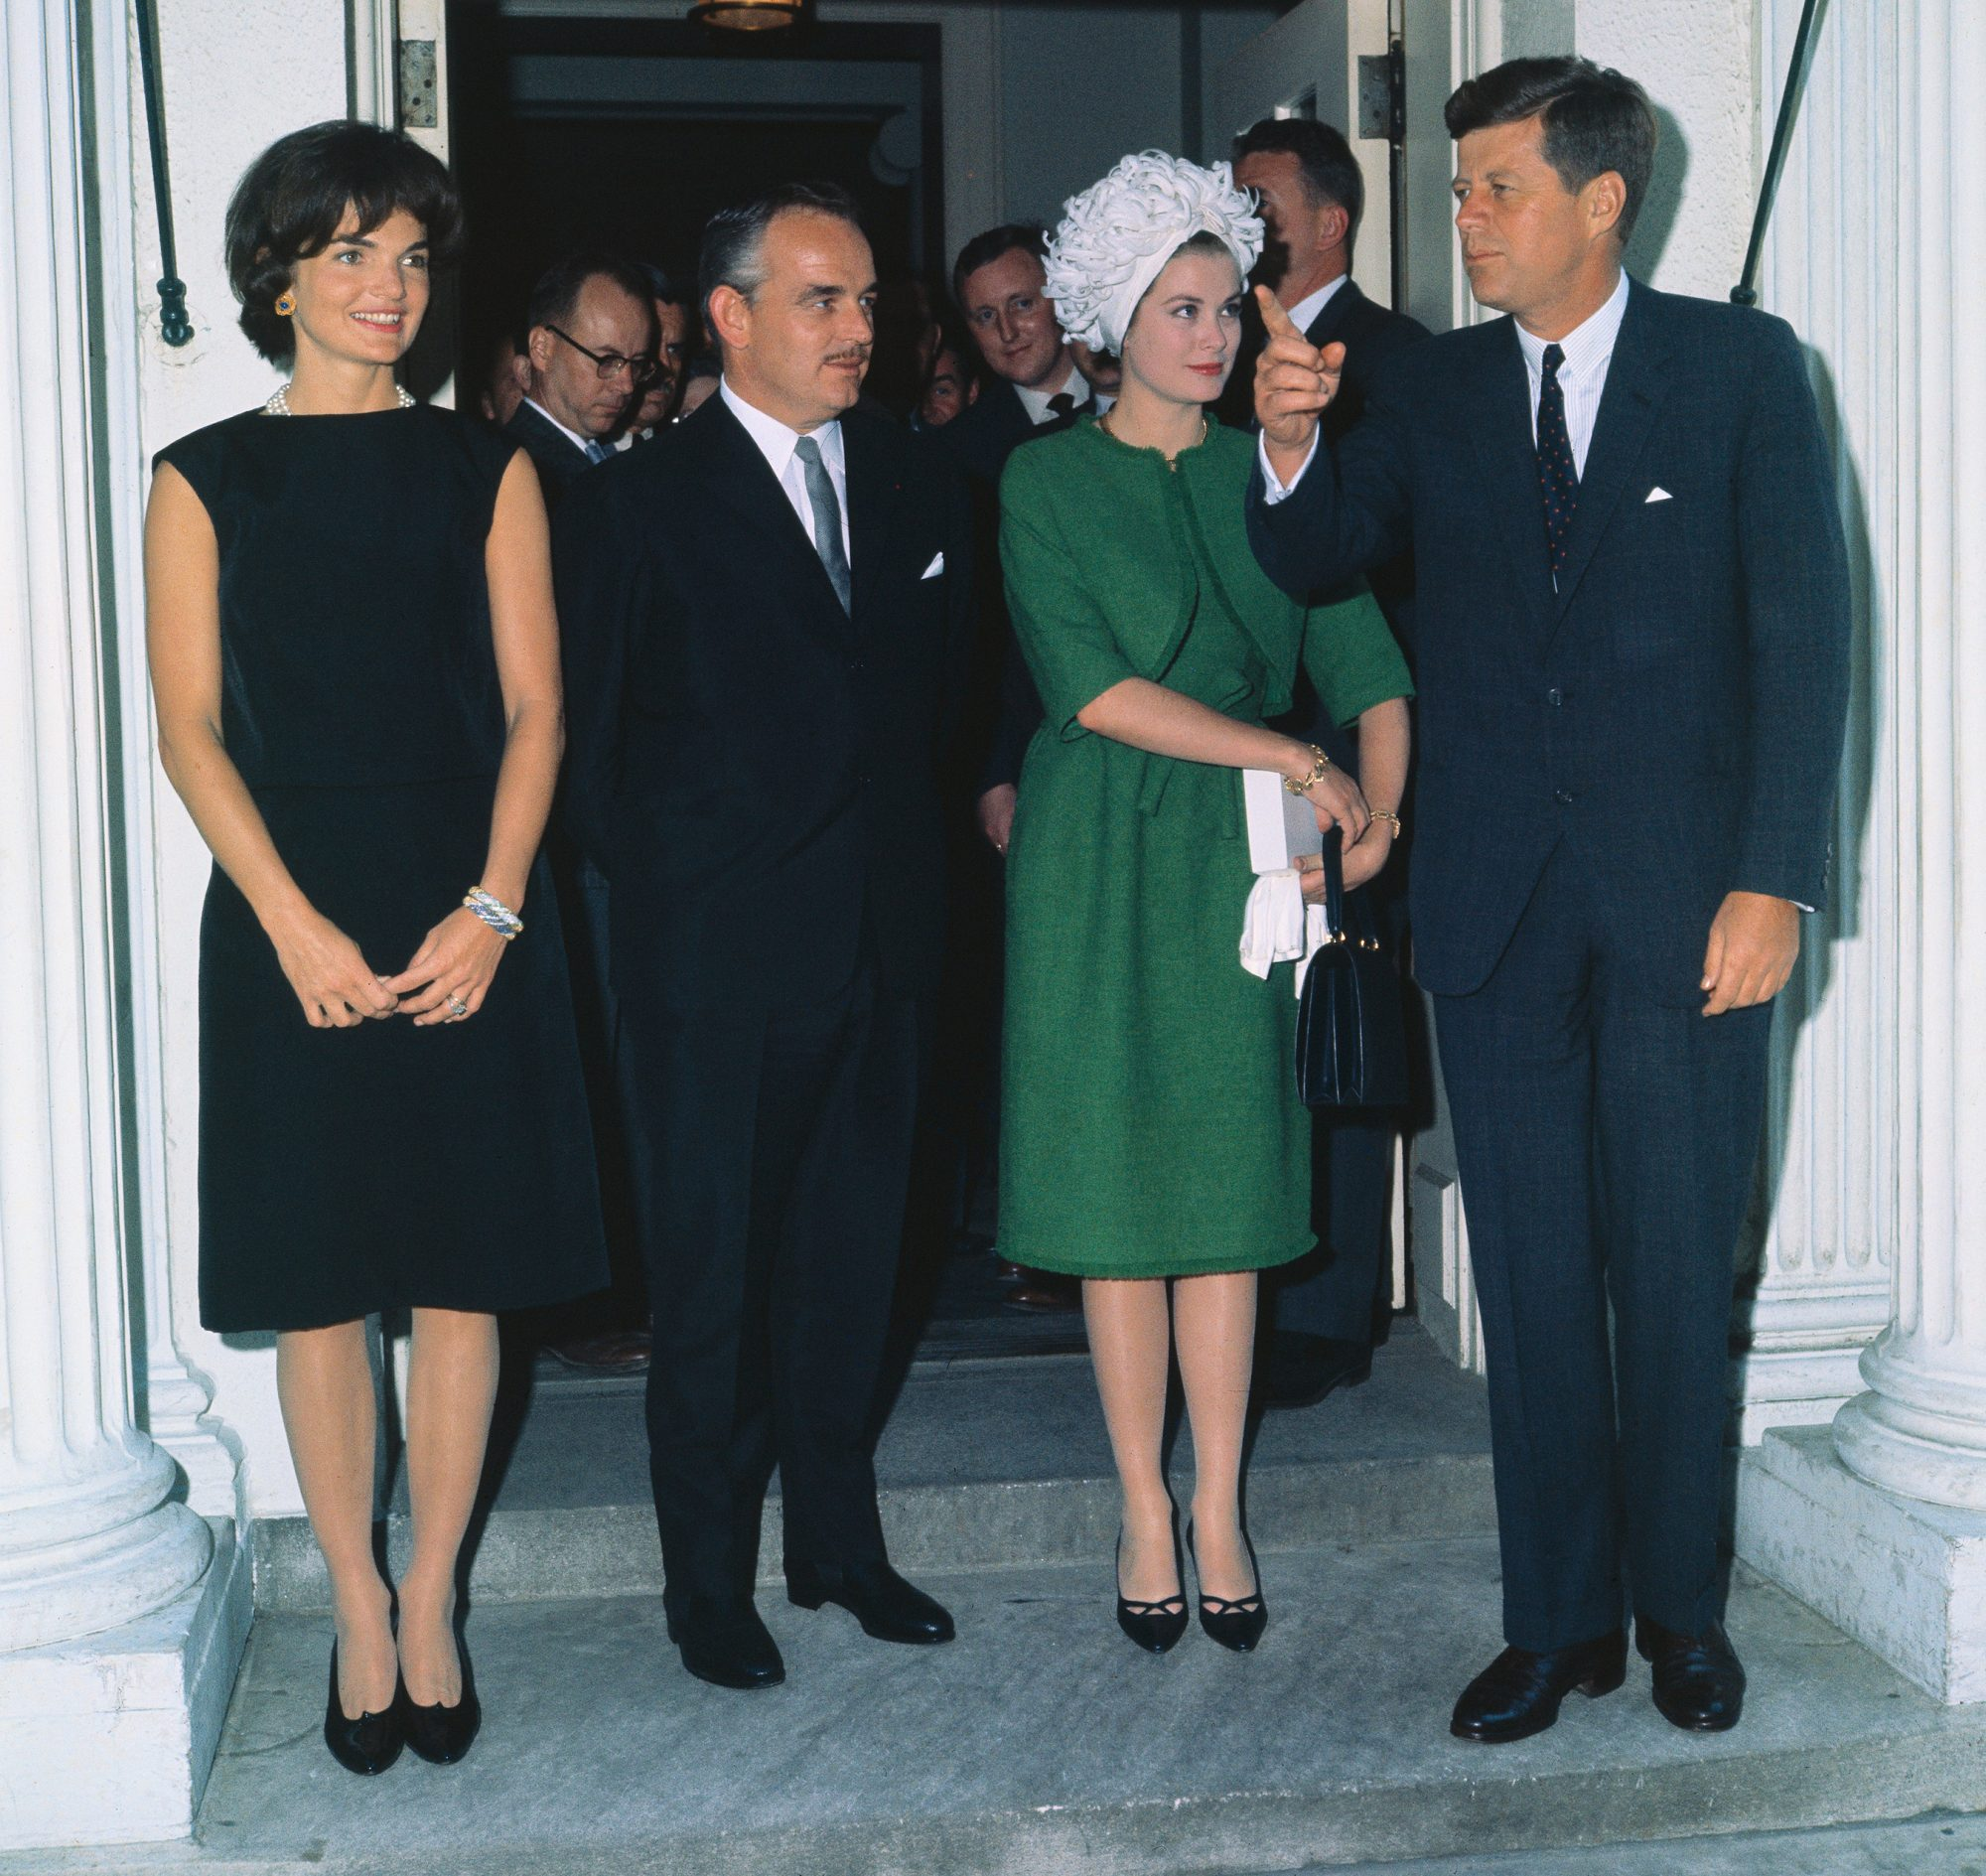 John F. Kennedy and Royalty